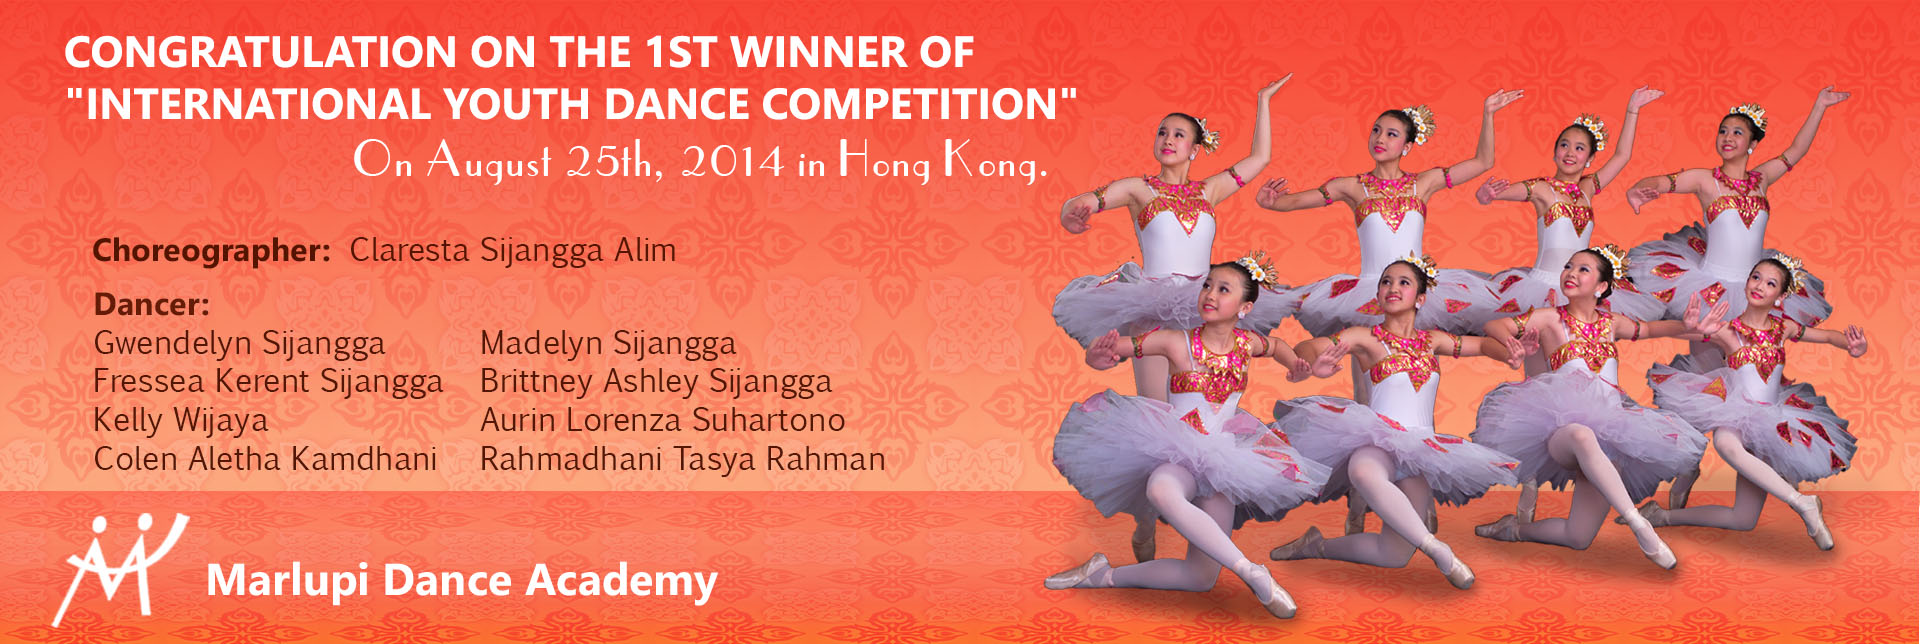 1st Winner Hong Kong International Youth Dance Competition 2014